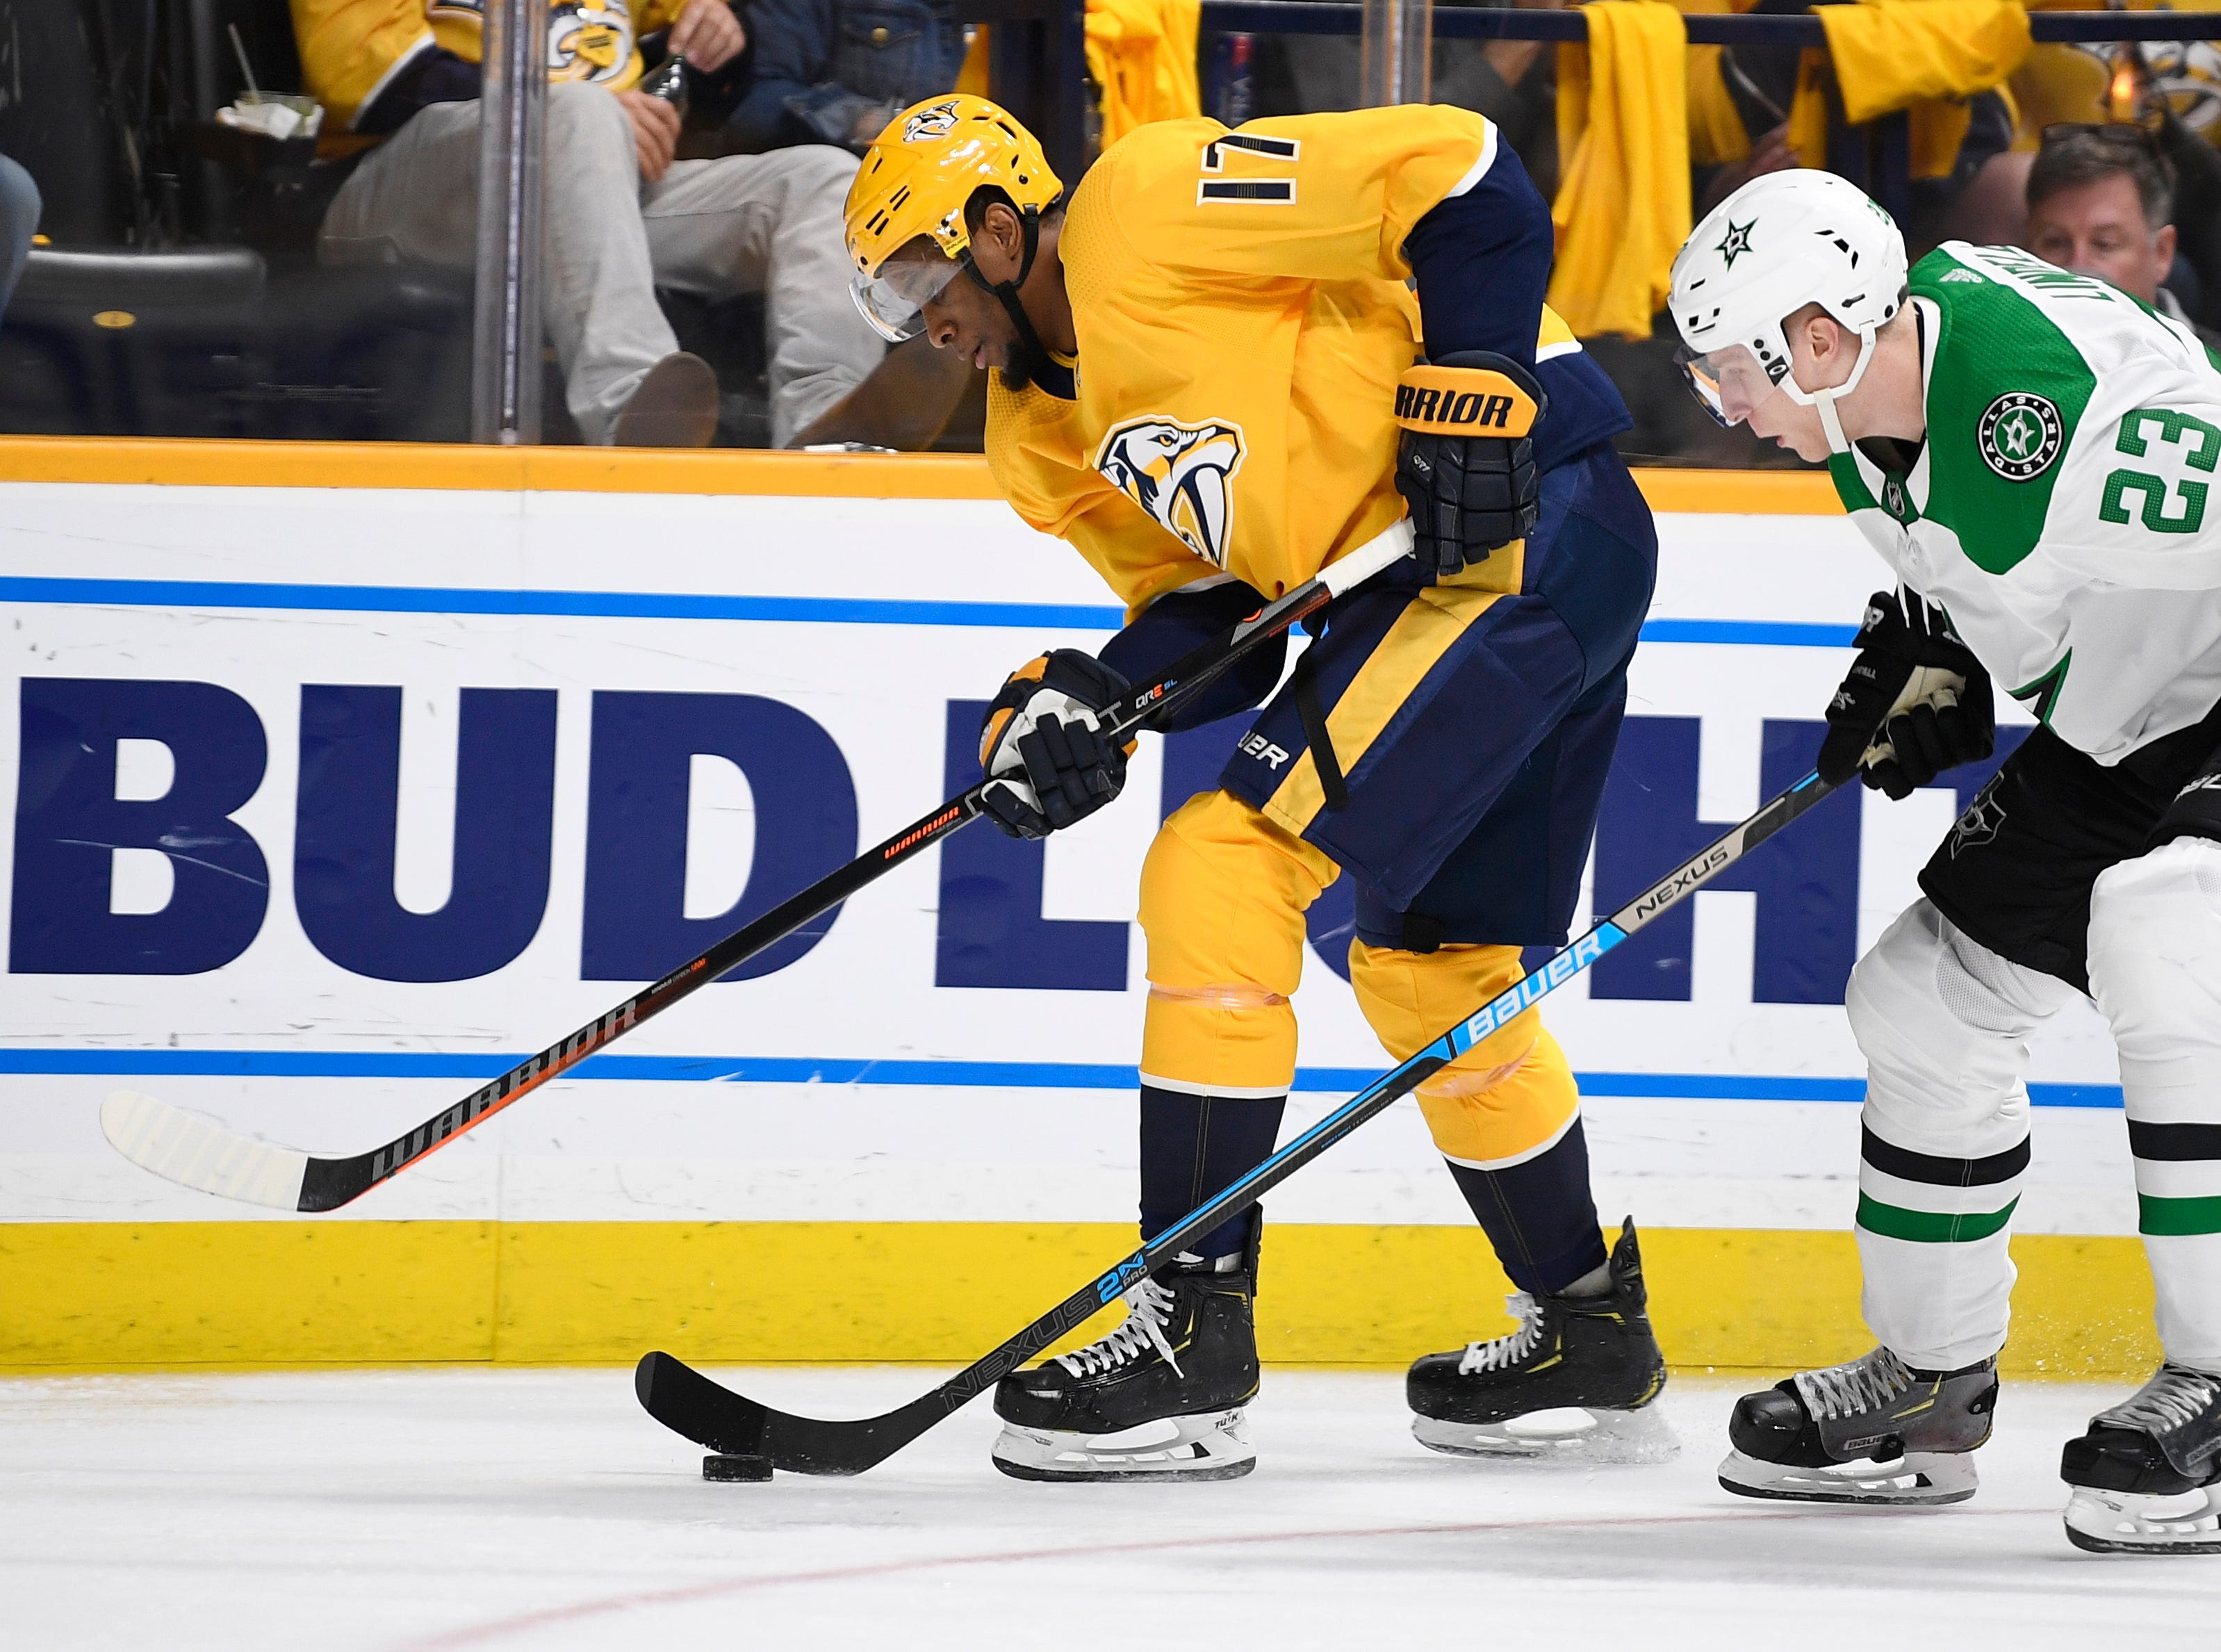 Nashville Predators right wing Wayne Simmonds (17) and Dallas Stars defenseman Esa Lindell (23) battle for the puck during the first period of the divisional semifinal game at Bridgestone Arena in Nashville, Tenn., Wednesday, April 10, 2019.